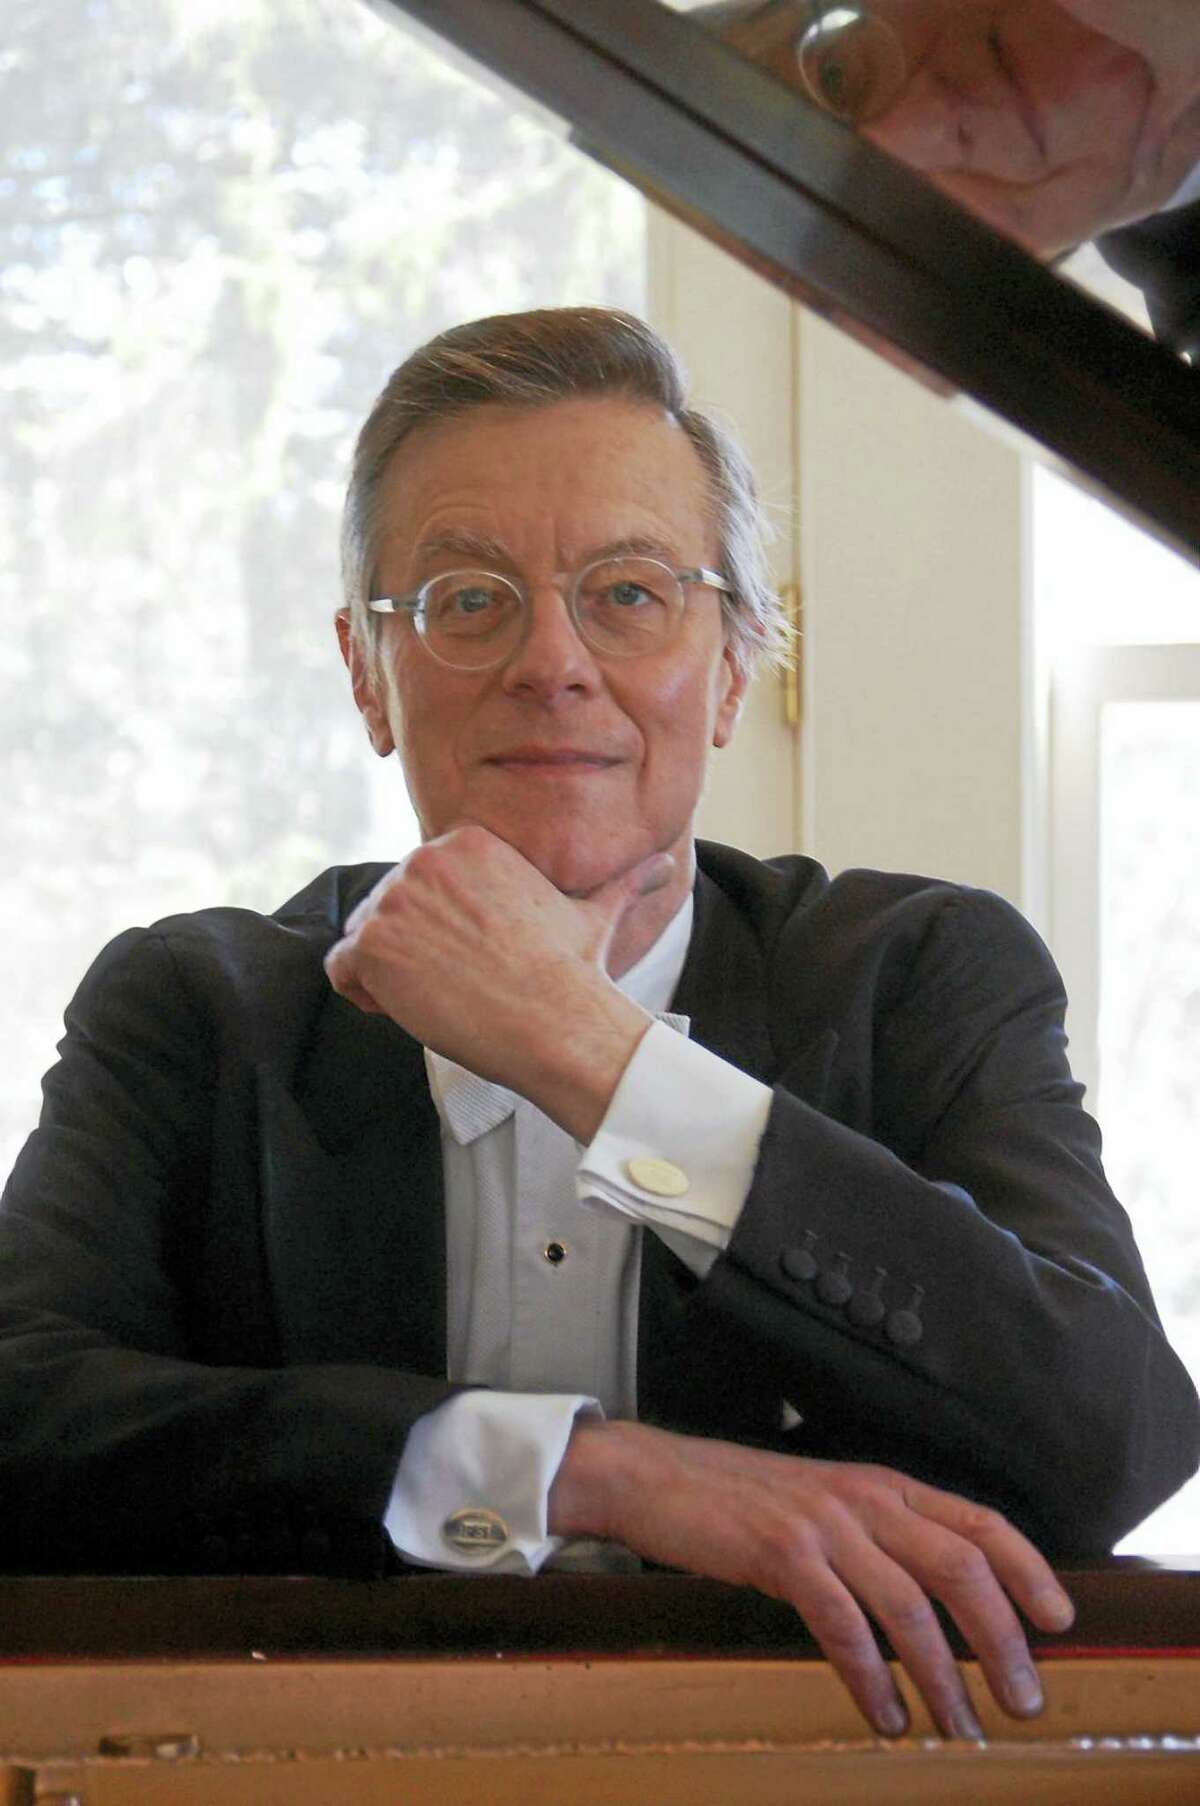 Contributed photoPianist Peter Serkin joins the renowned lineup of musicians at Music Mountain during its 2017 season of concerts.